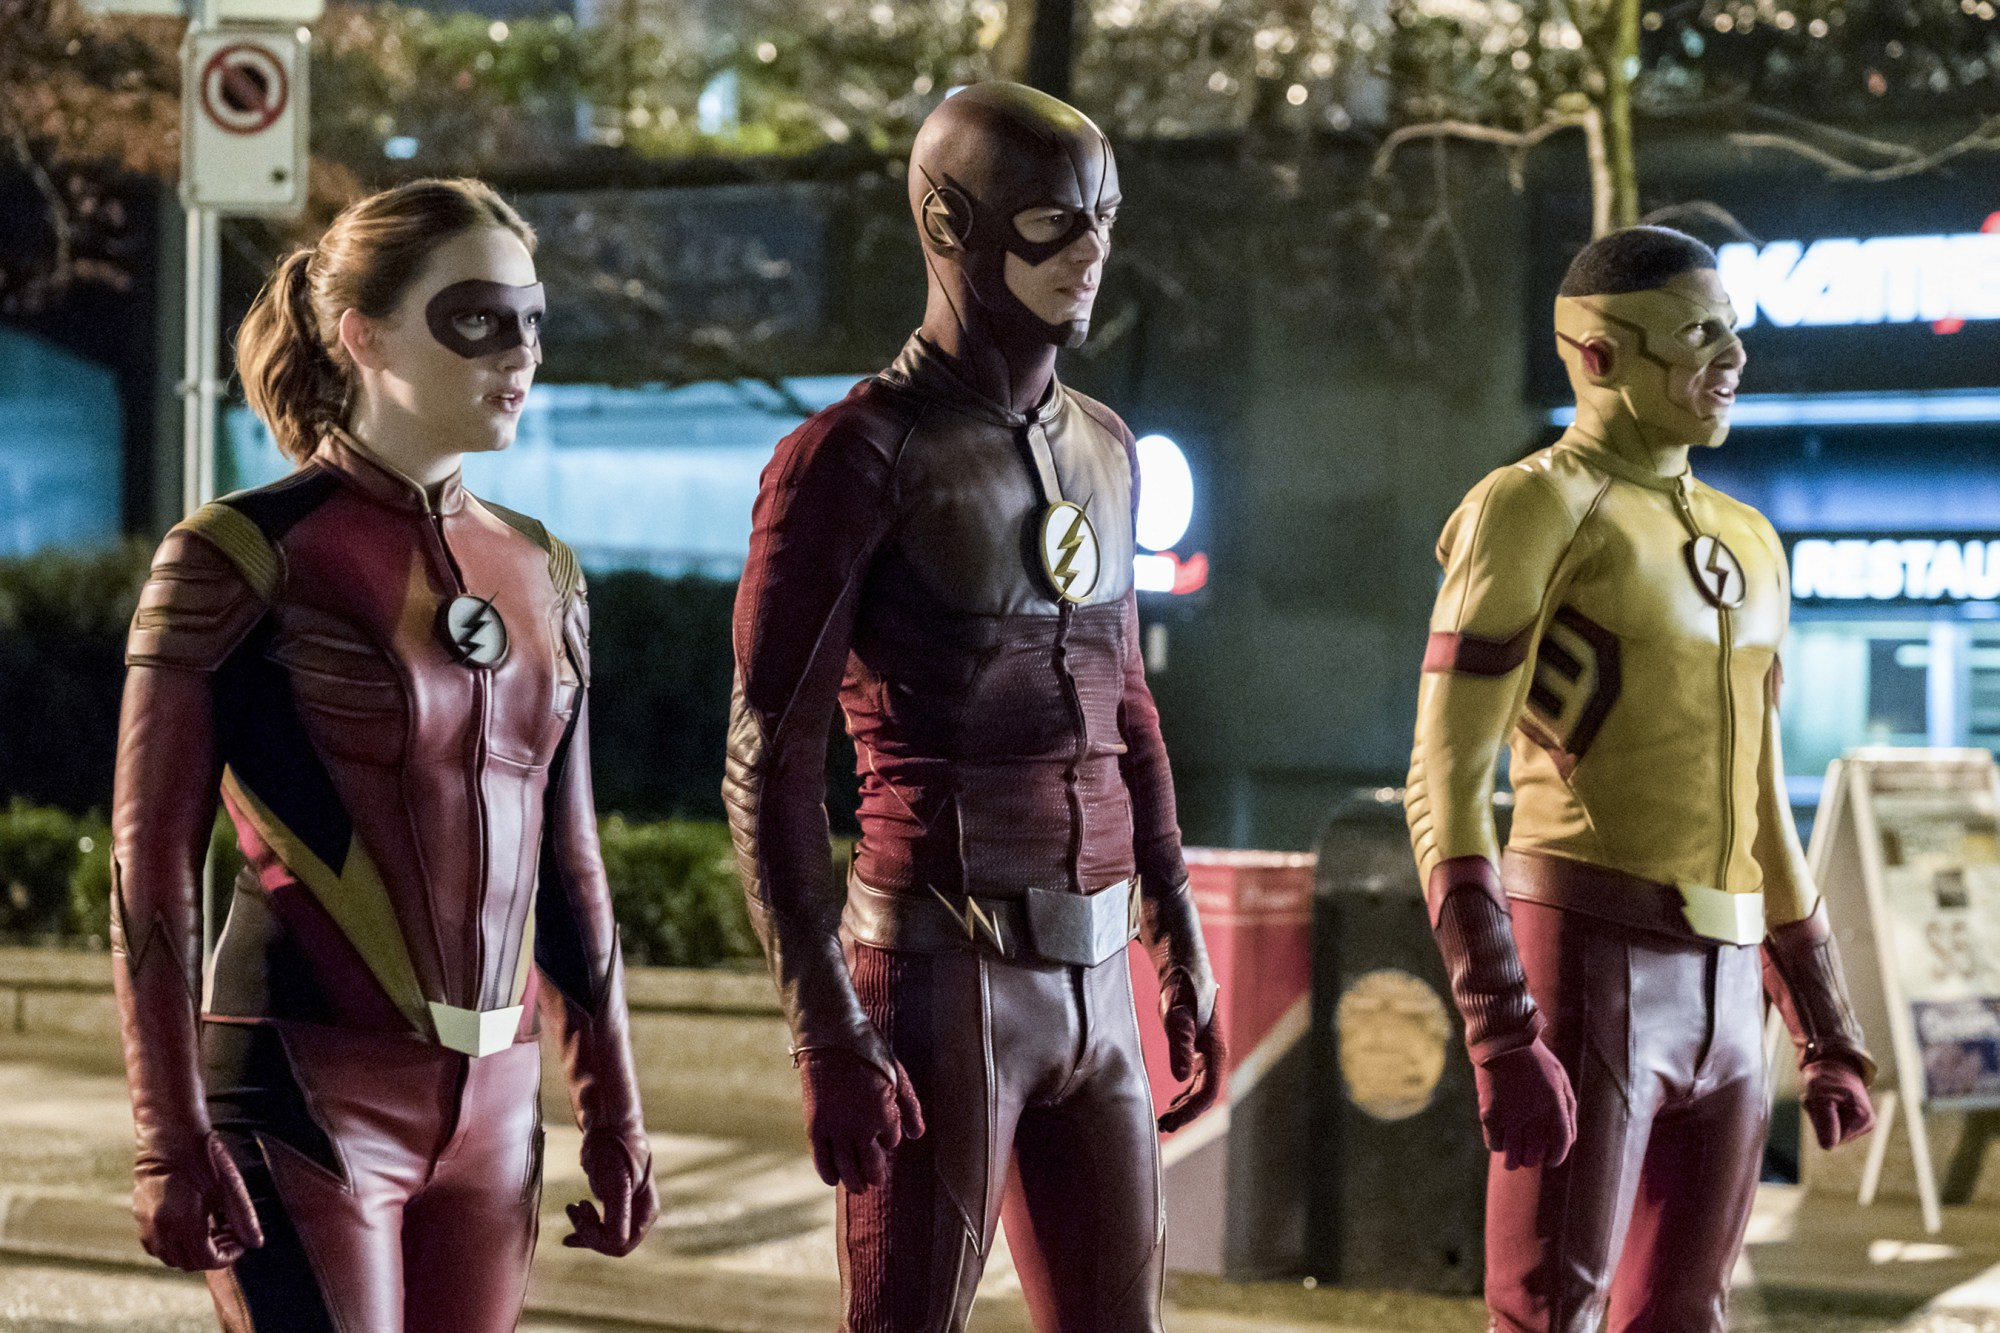 """The Flash: Season 3, Episode 14 """"Attack on Central City"""" Review"""